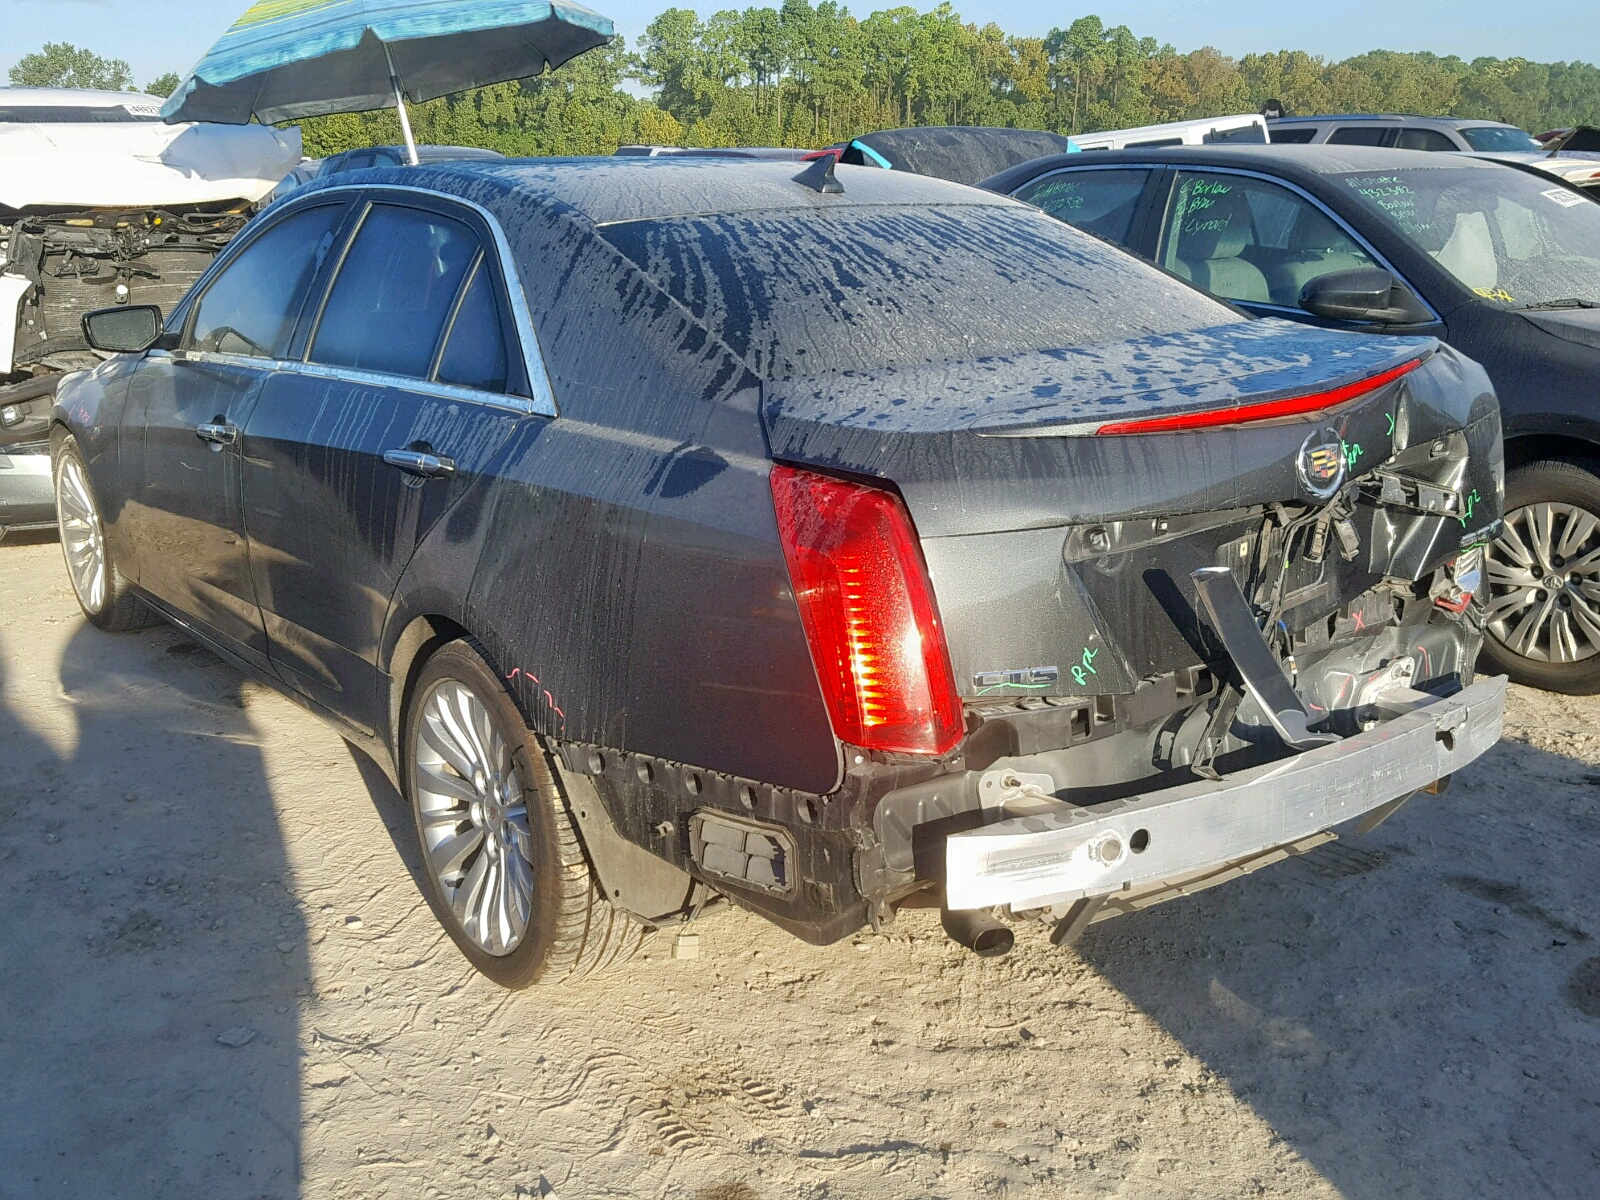 2014 Cadillac Cts Luxury 2.0L [Angle] View